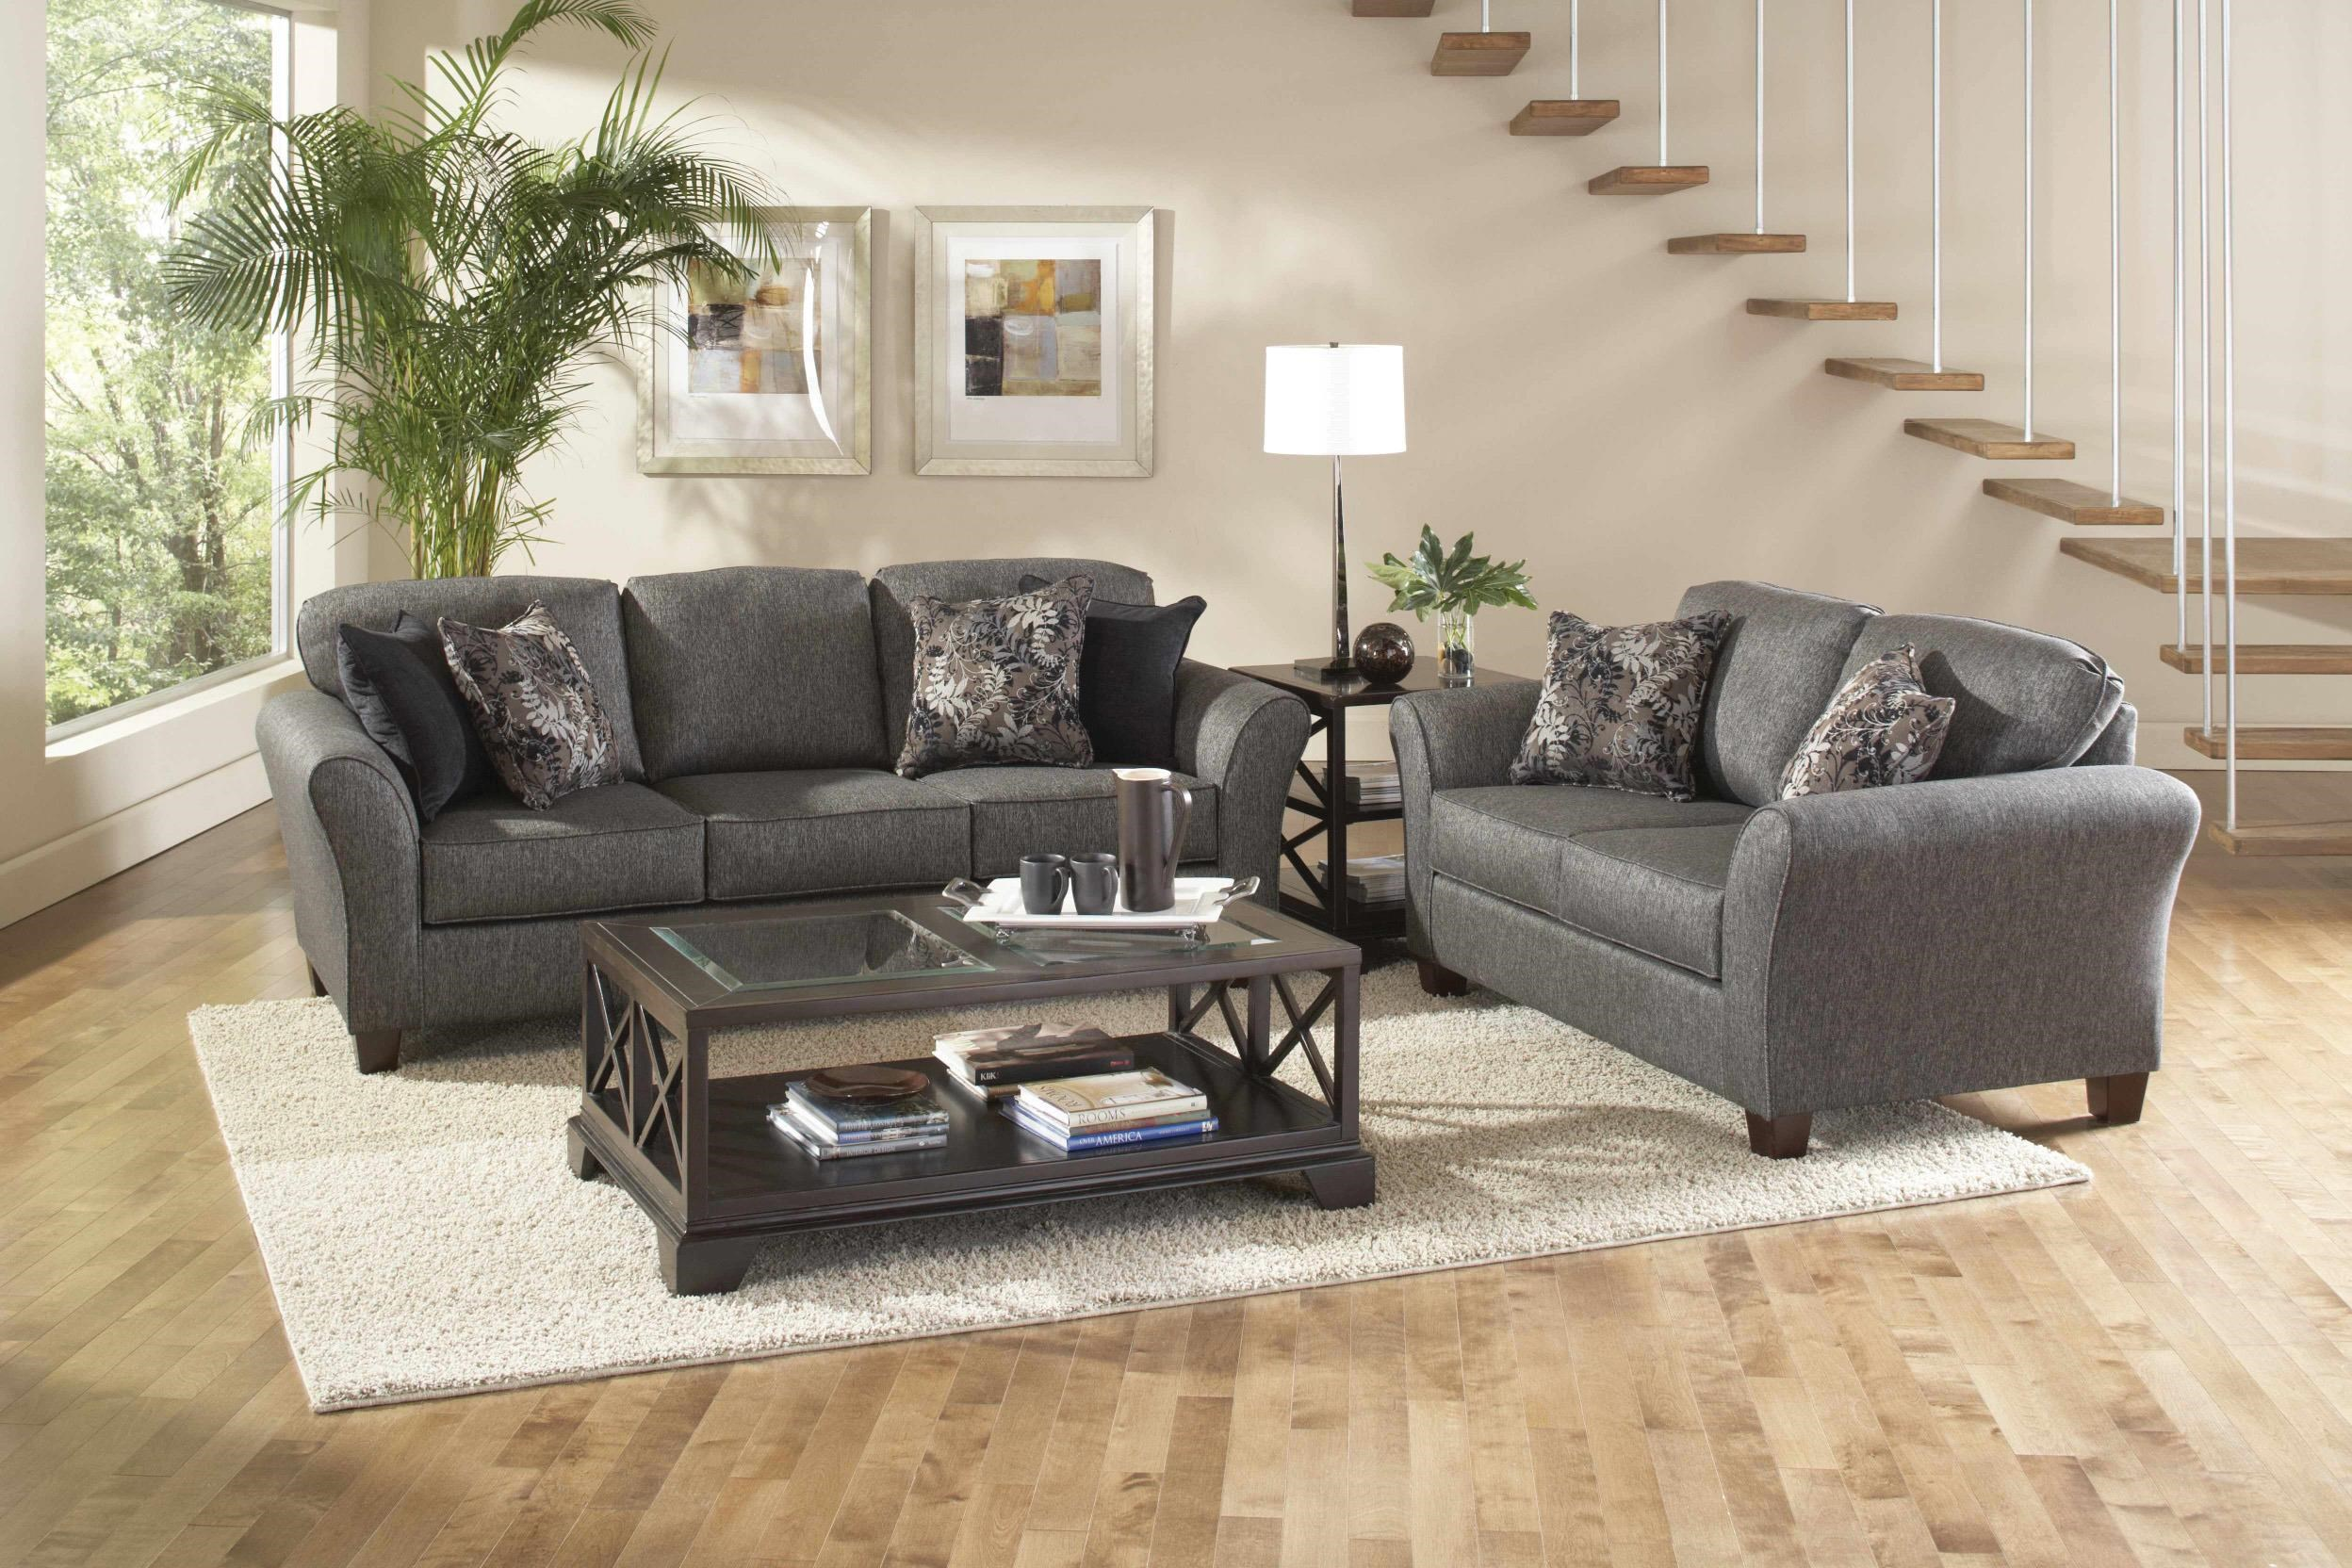 4600 Transitional Sofa by Serta Upholstery by Hughes Furniture at VanDrie Home Furnishings